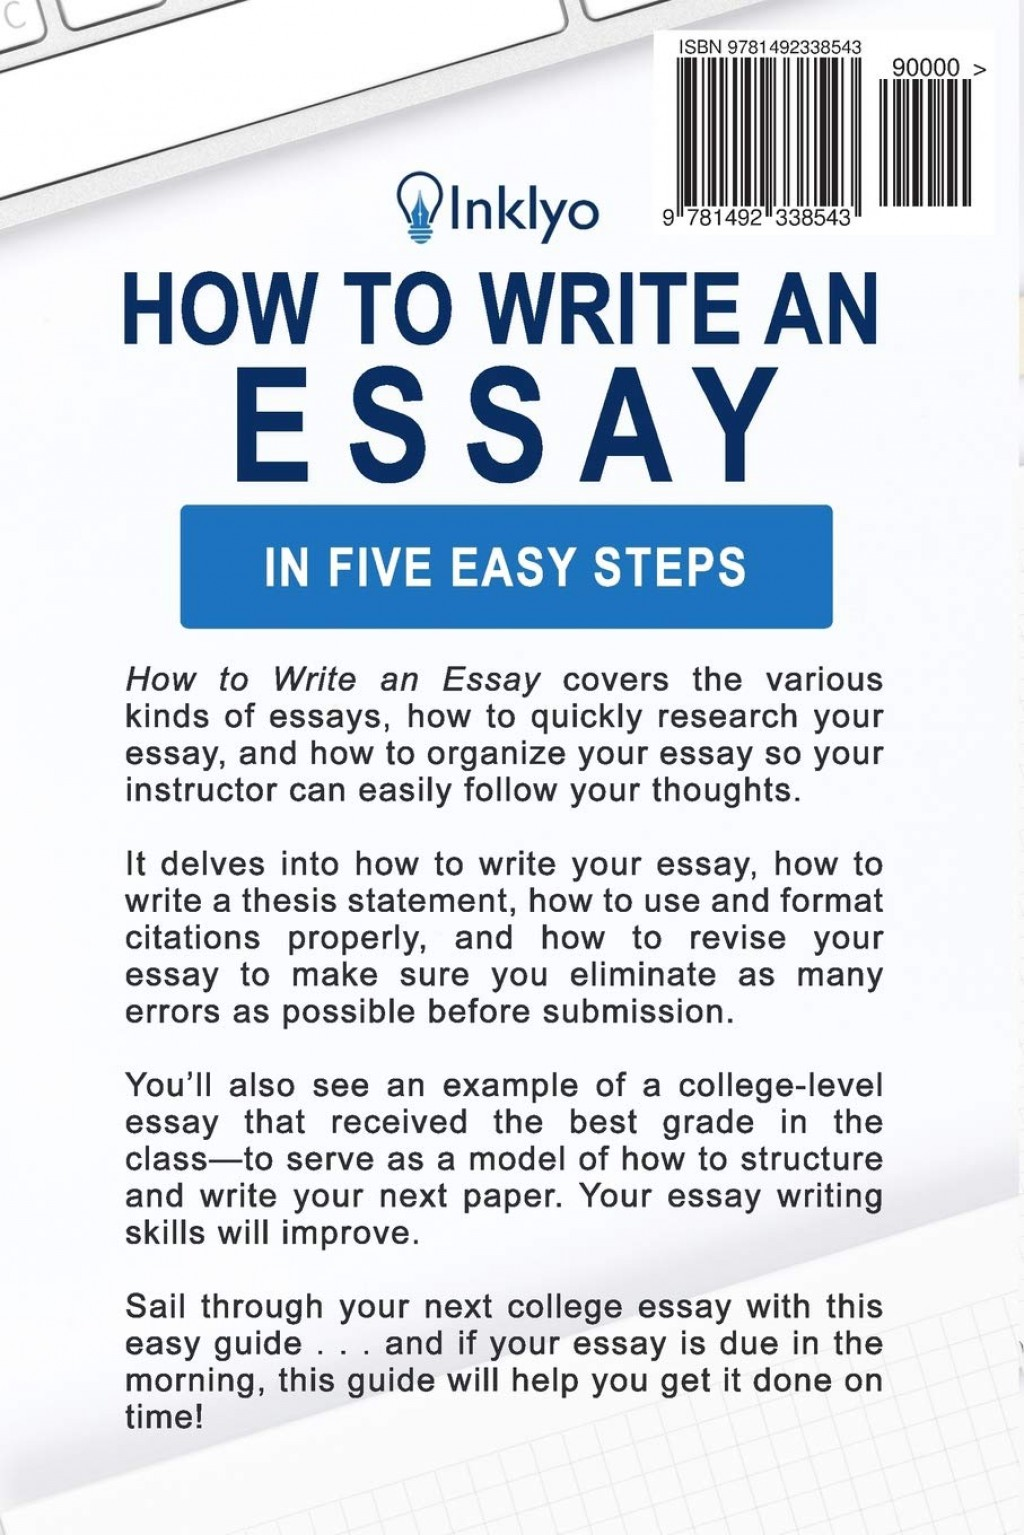 013 Essay Example 71v7ckw5pll Writing Striking A Creative About Yourself College Outline 5 Steps To Large